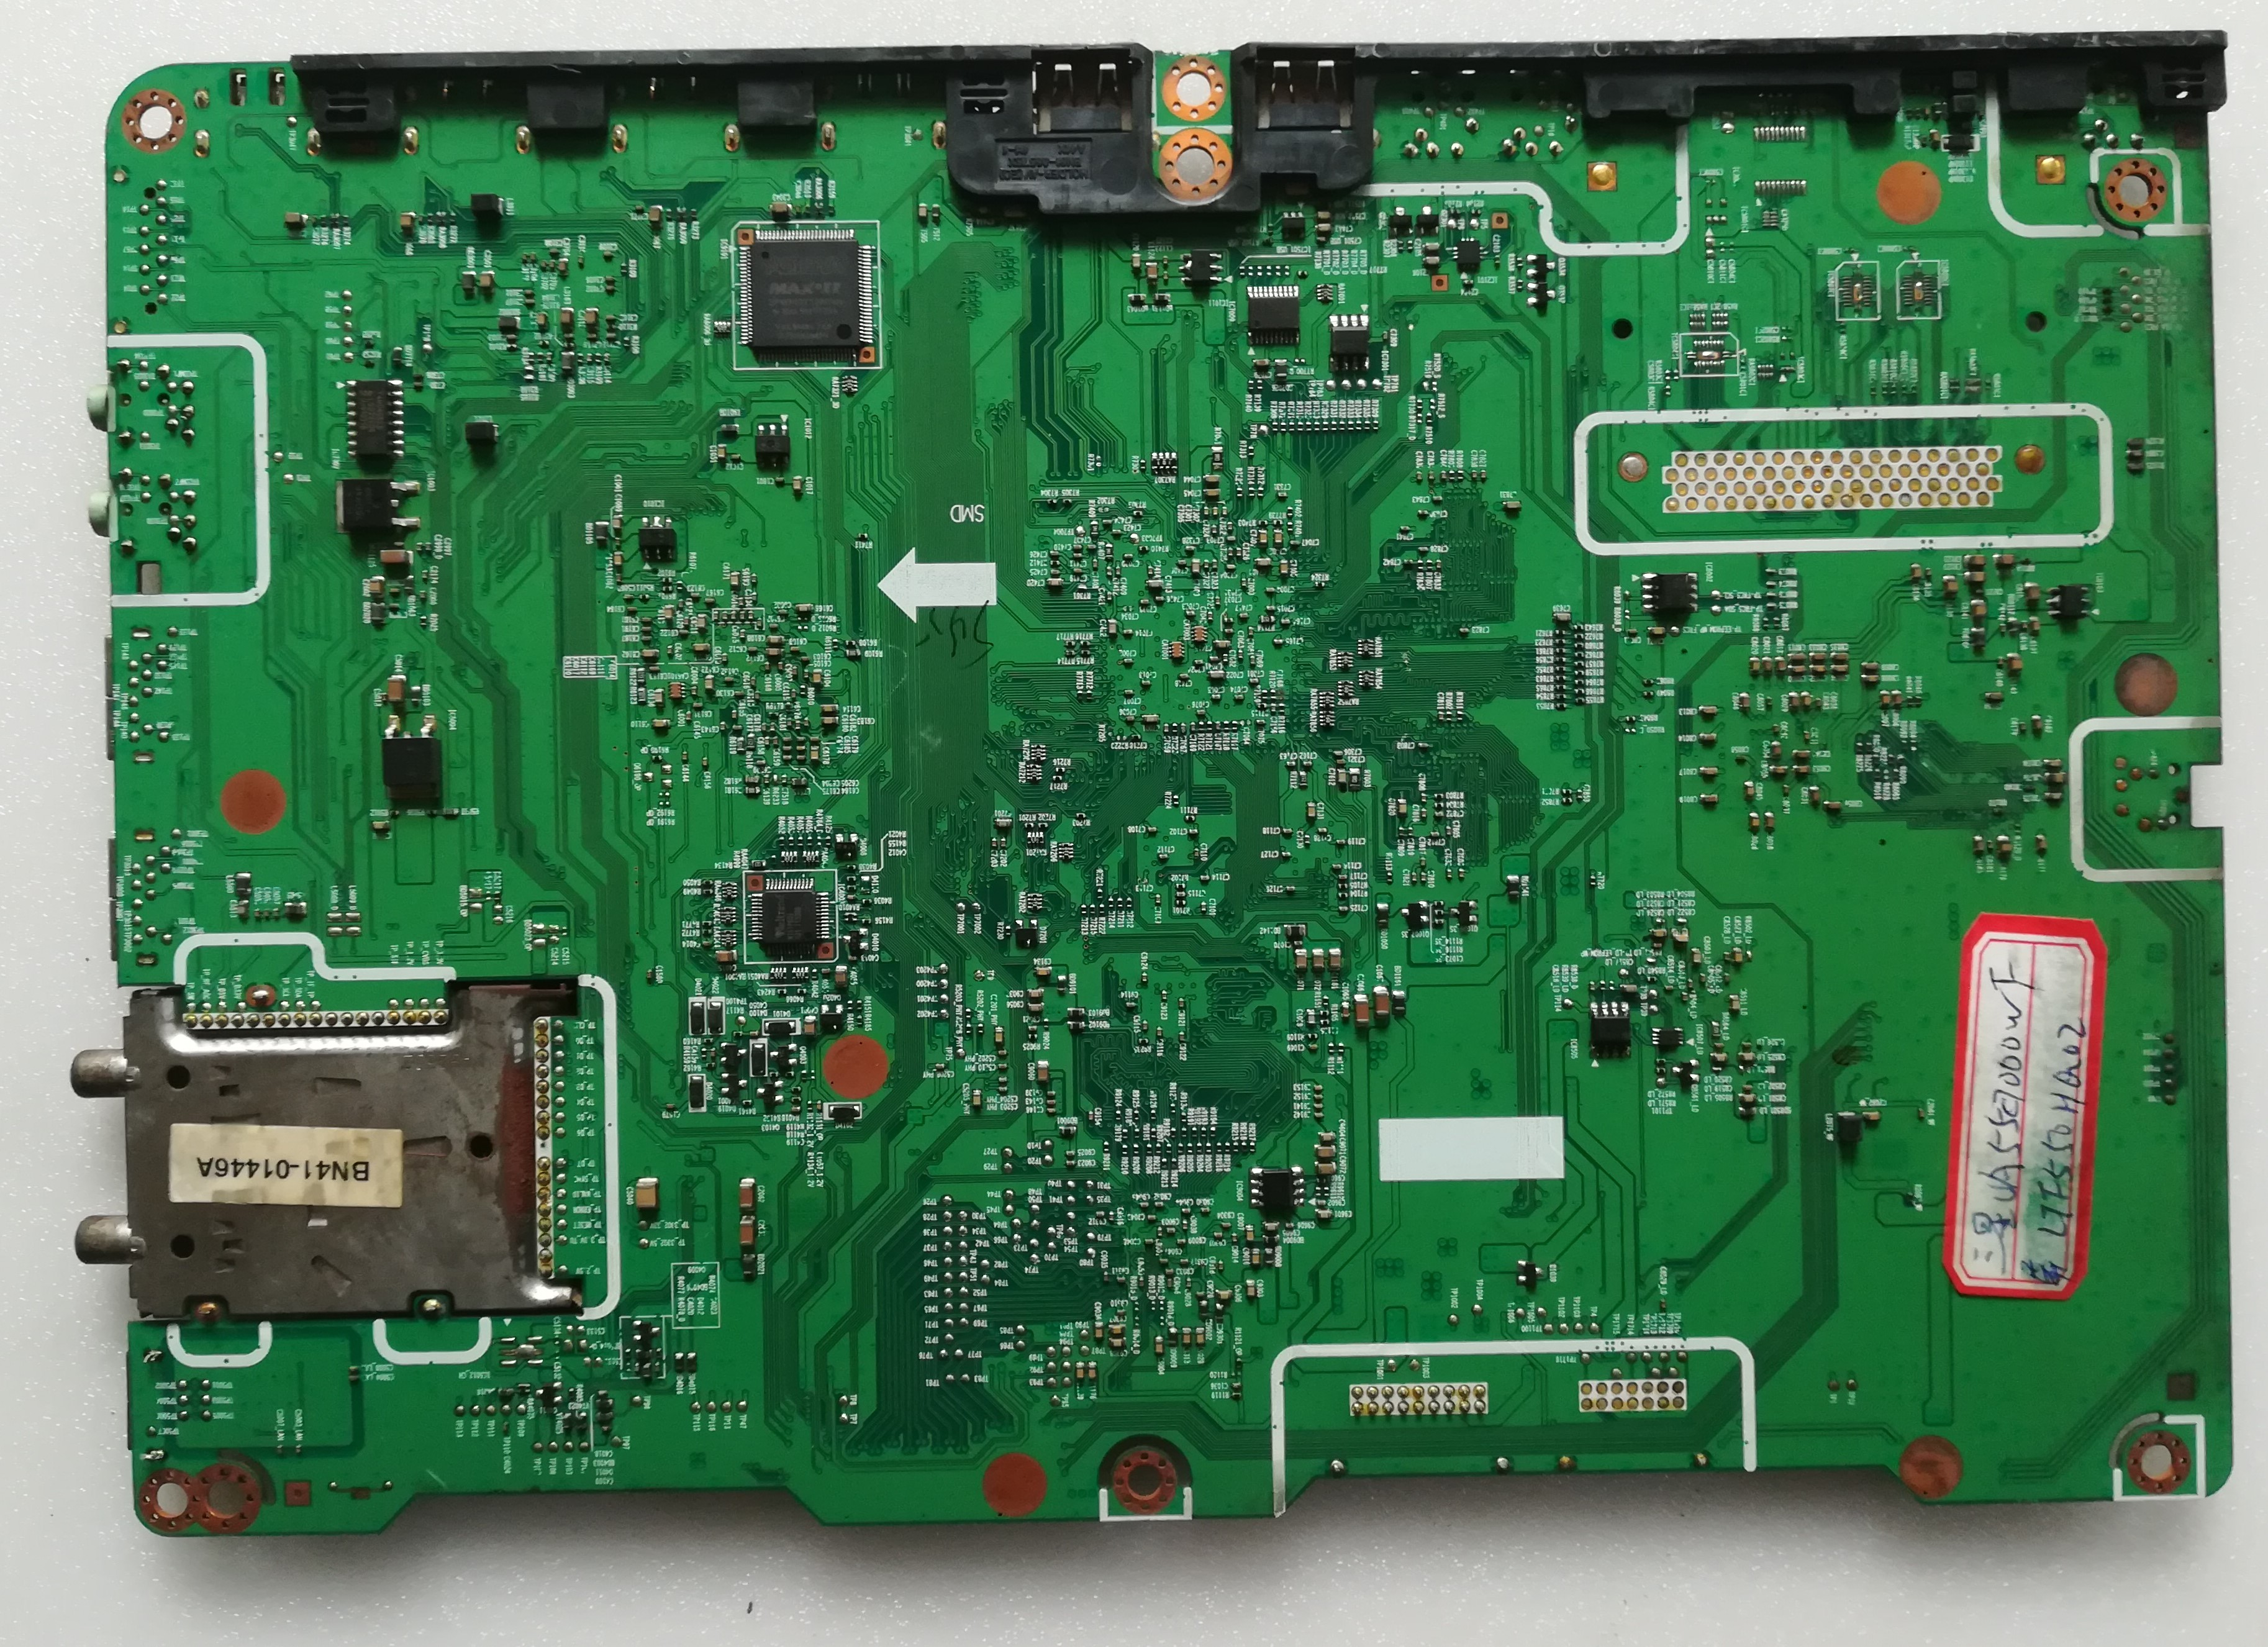 Original Logic Circuit Board Main Board Ua55c7000wf Ua46c7000wf TV Main Board Bn41-01446b With Ltf550hq02 Circuit Board